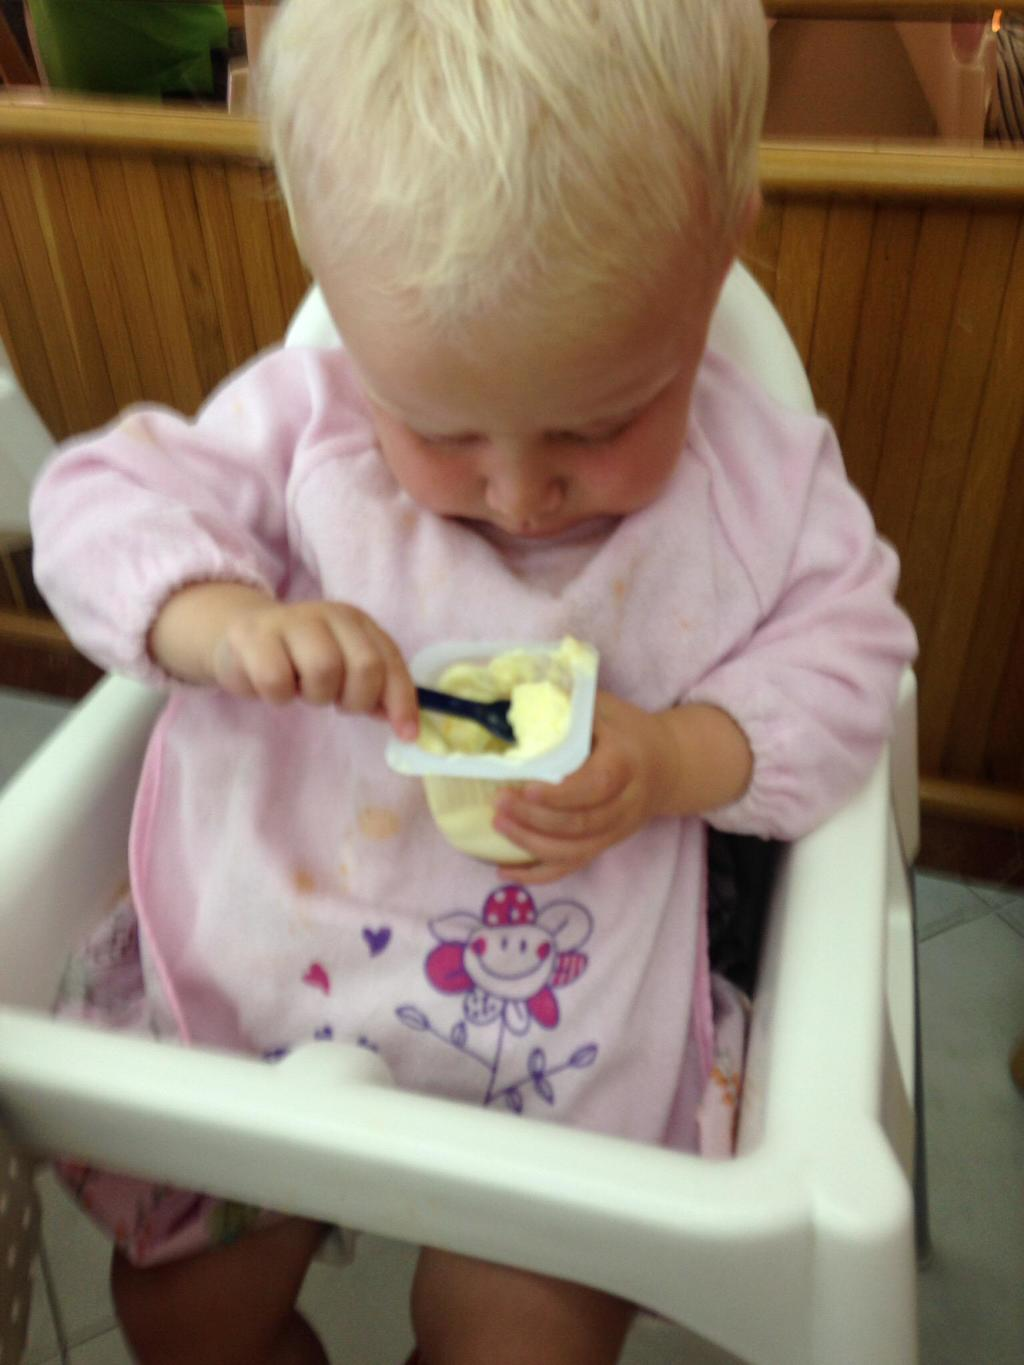 Zara eating ice cream